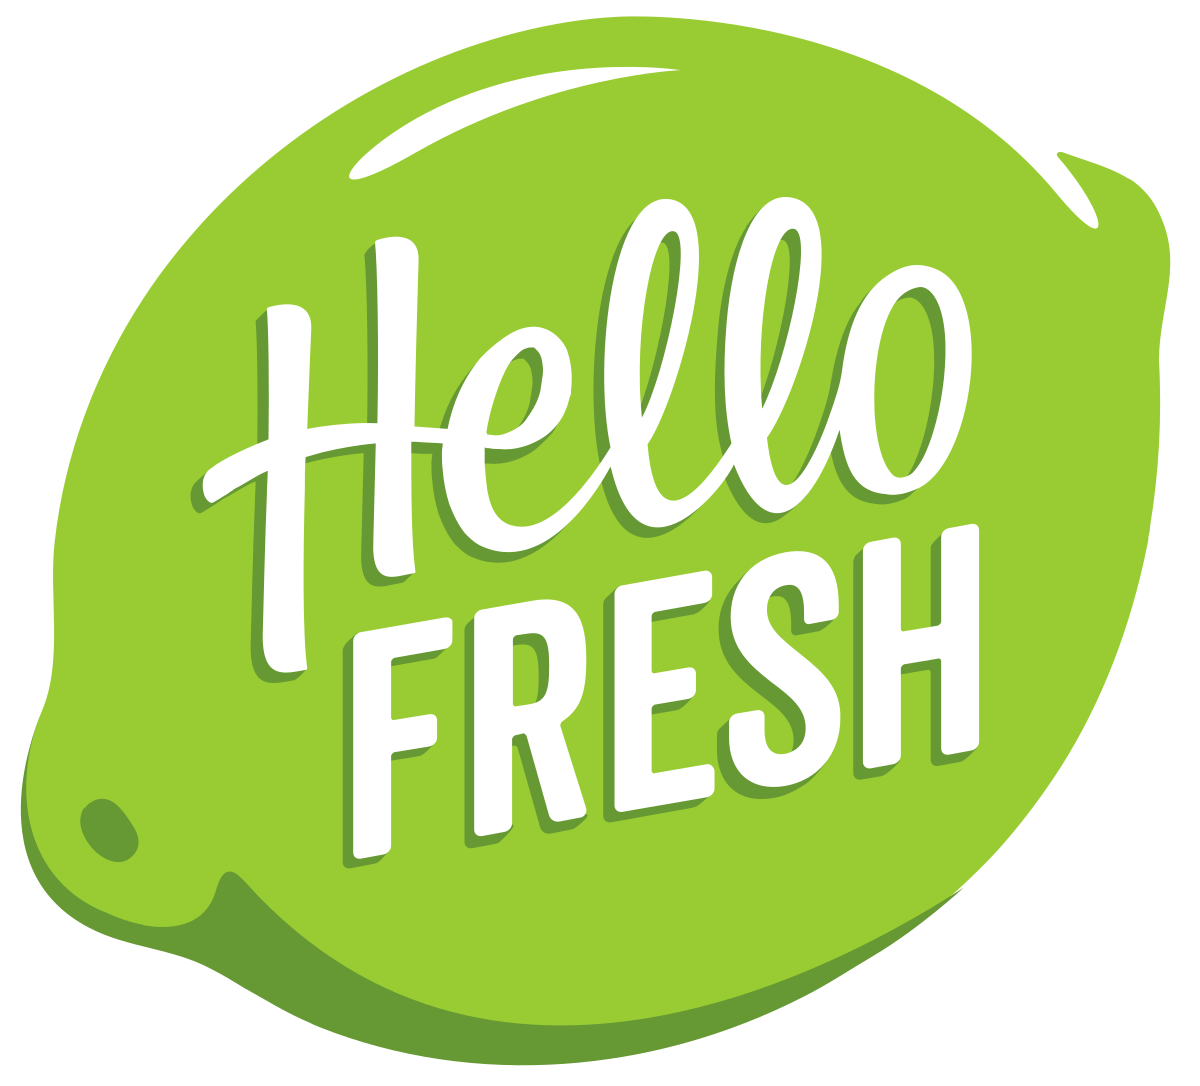 Hello Fresh - meal-kit company